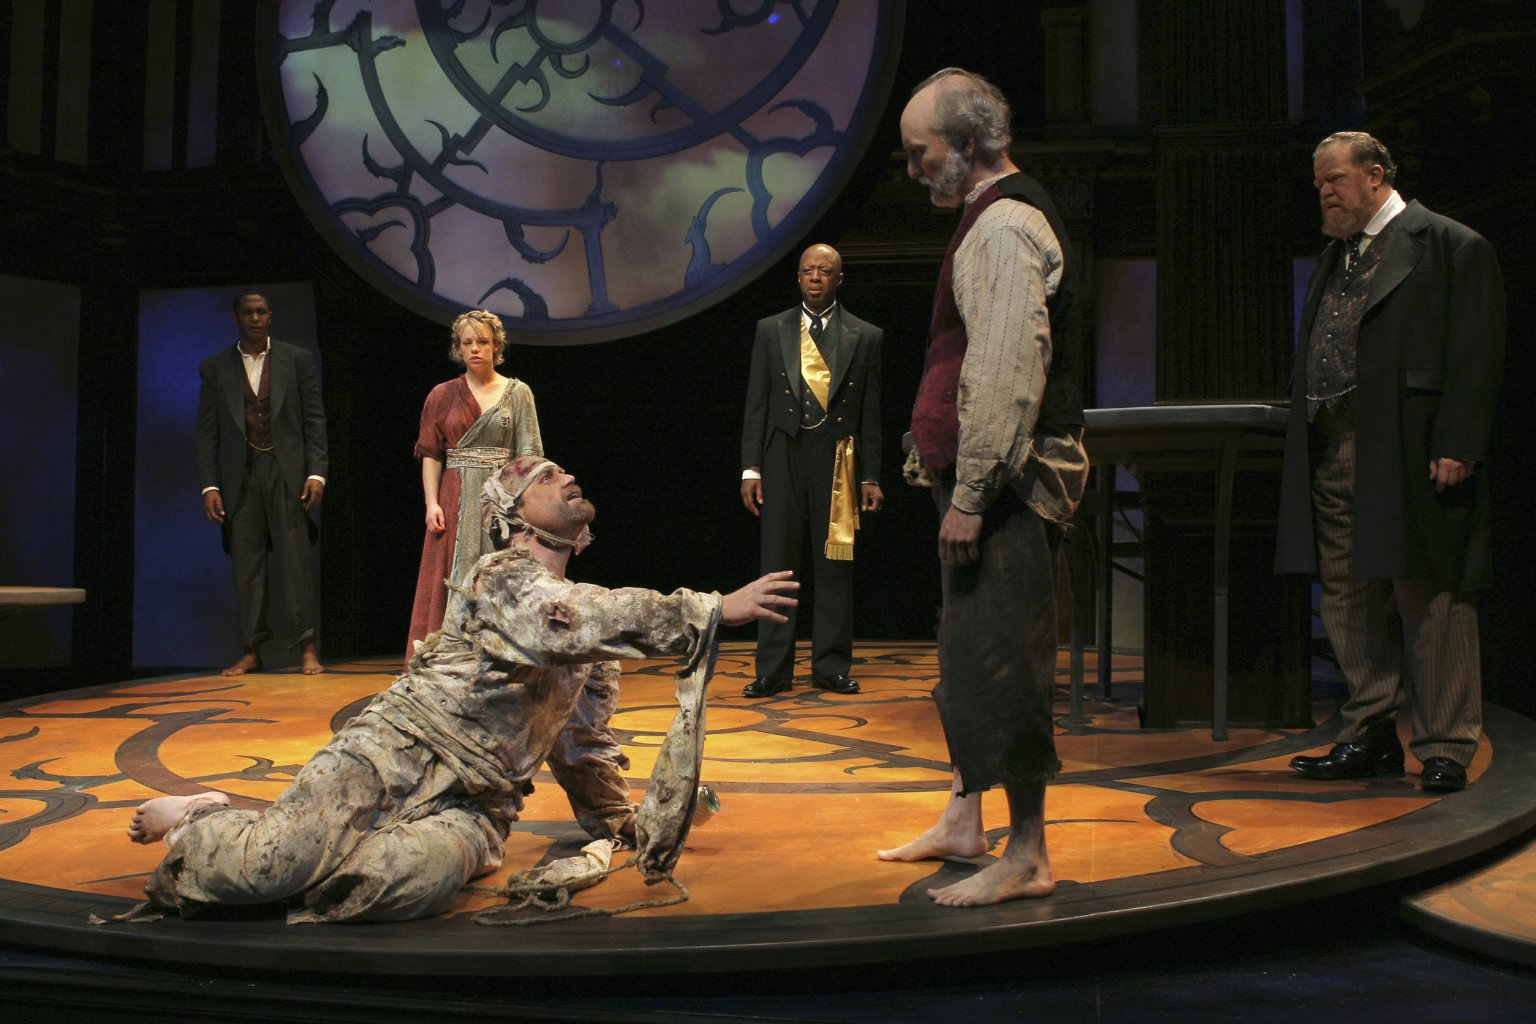 colonialism in the tempest Discuss the discourse of colonialism in the tempest the tempest is a play of such ambiguity that it becomes difficult to discuss the subject of a colonialist discourse in isolation it becomes inextricably linked with not only power and authority.